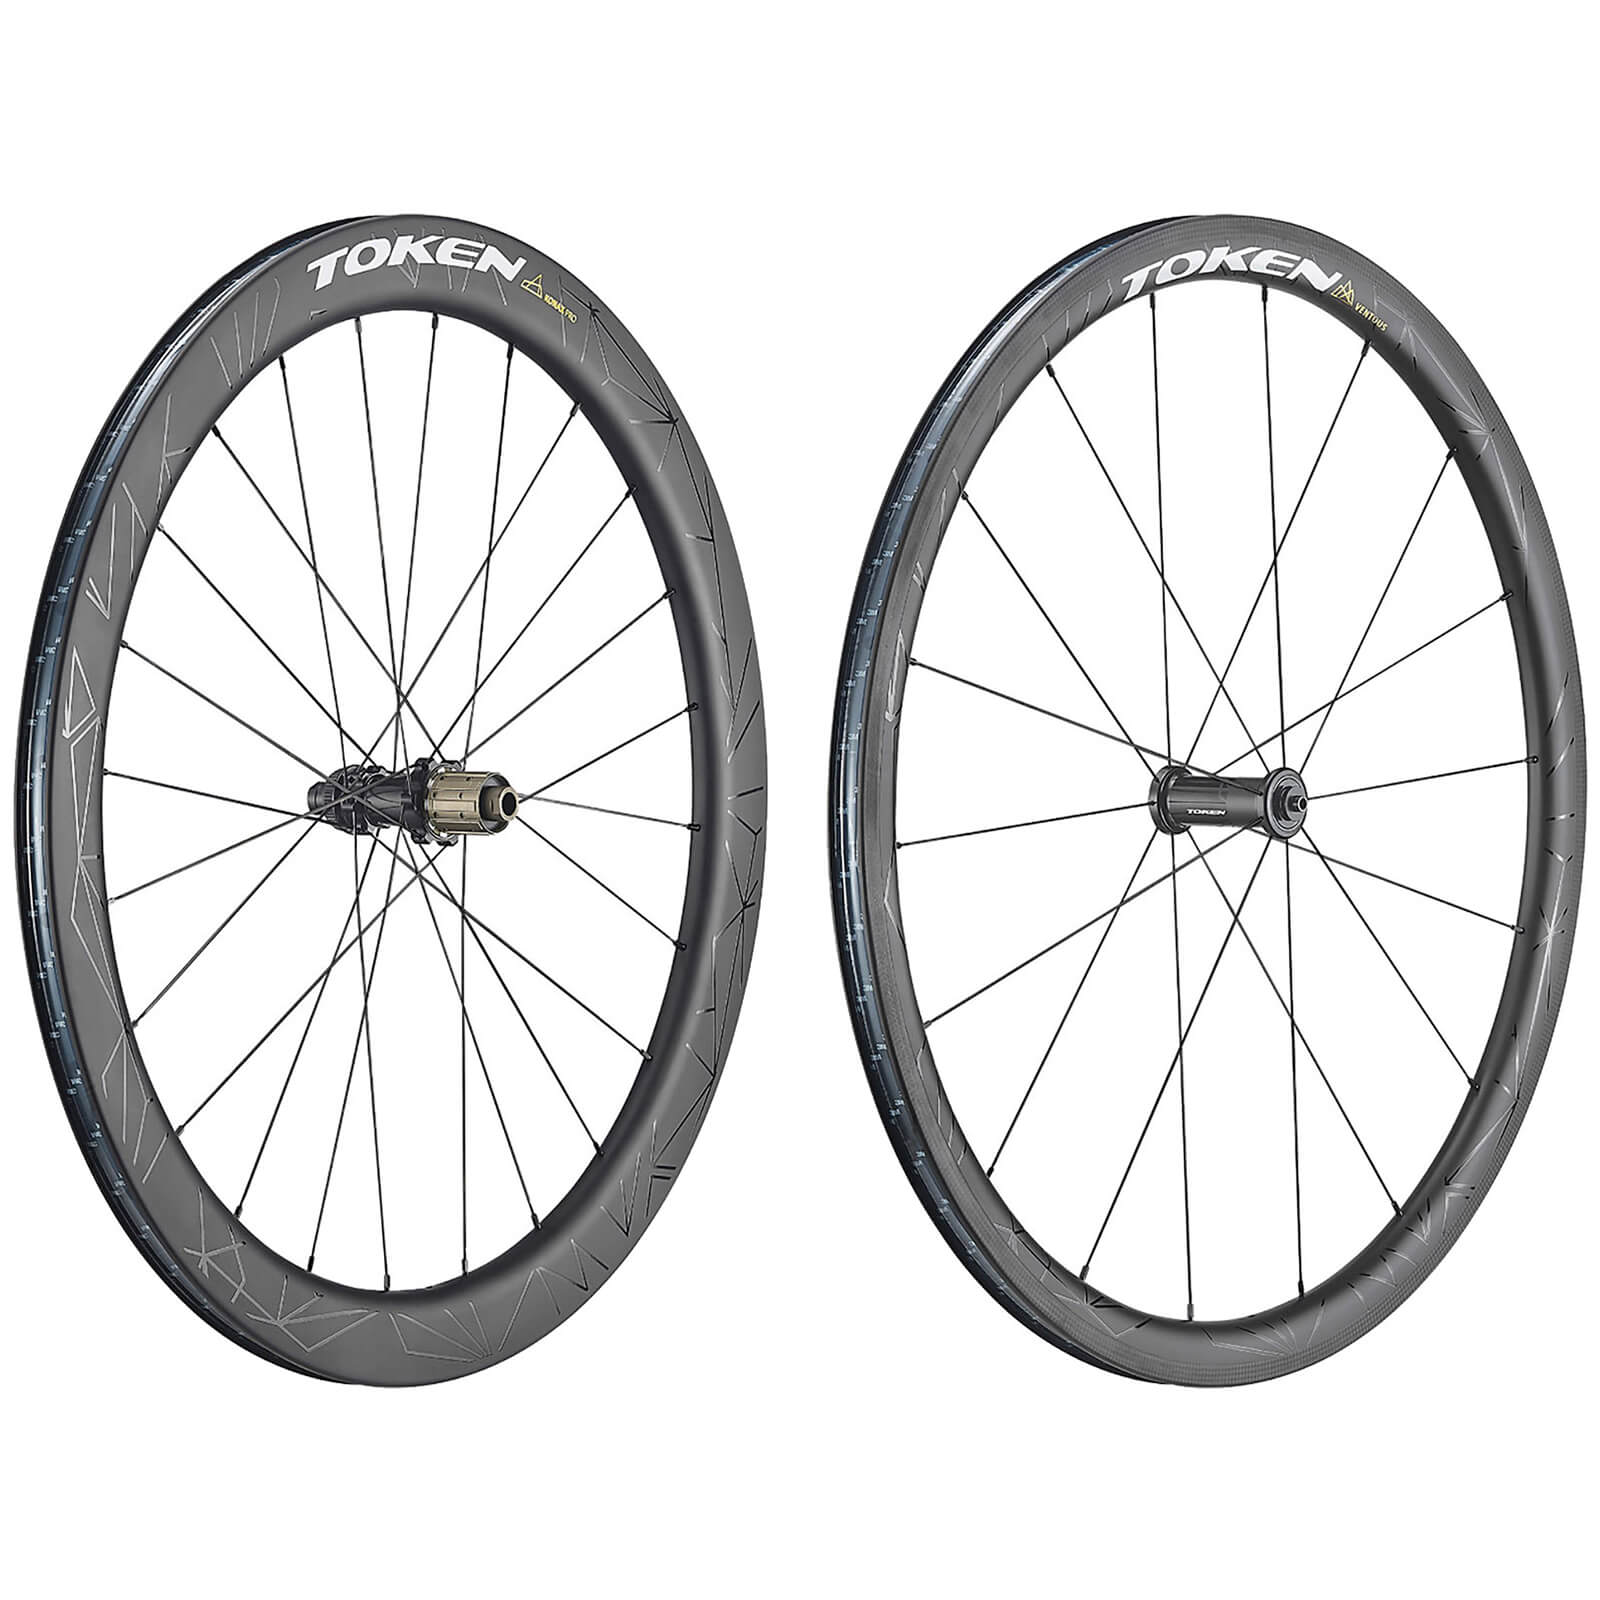 Token Ventous and Konax Pro Carbon Tubeless Ready Wheelset - Shimano